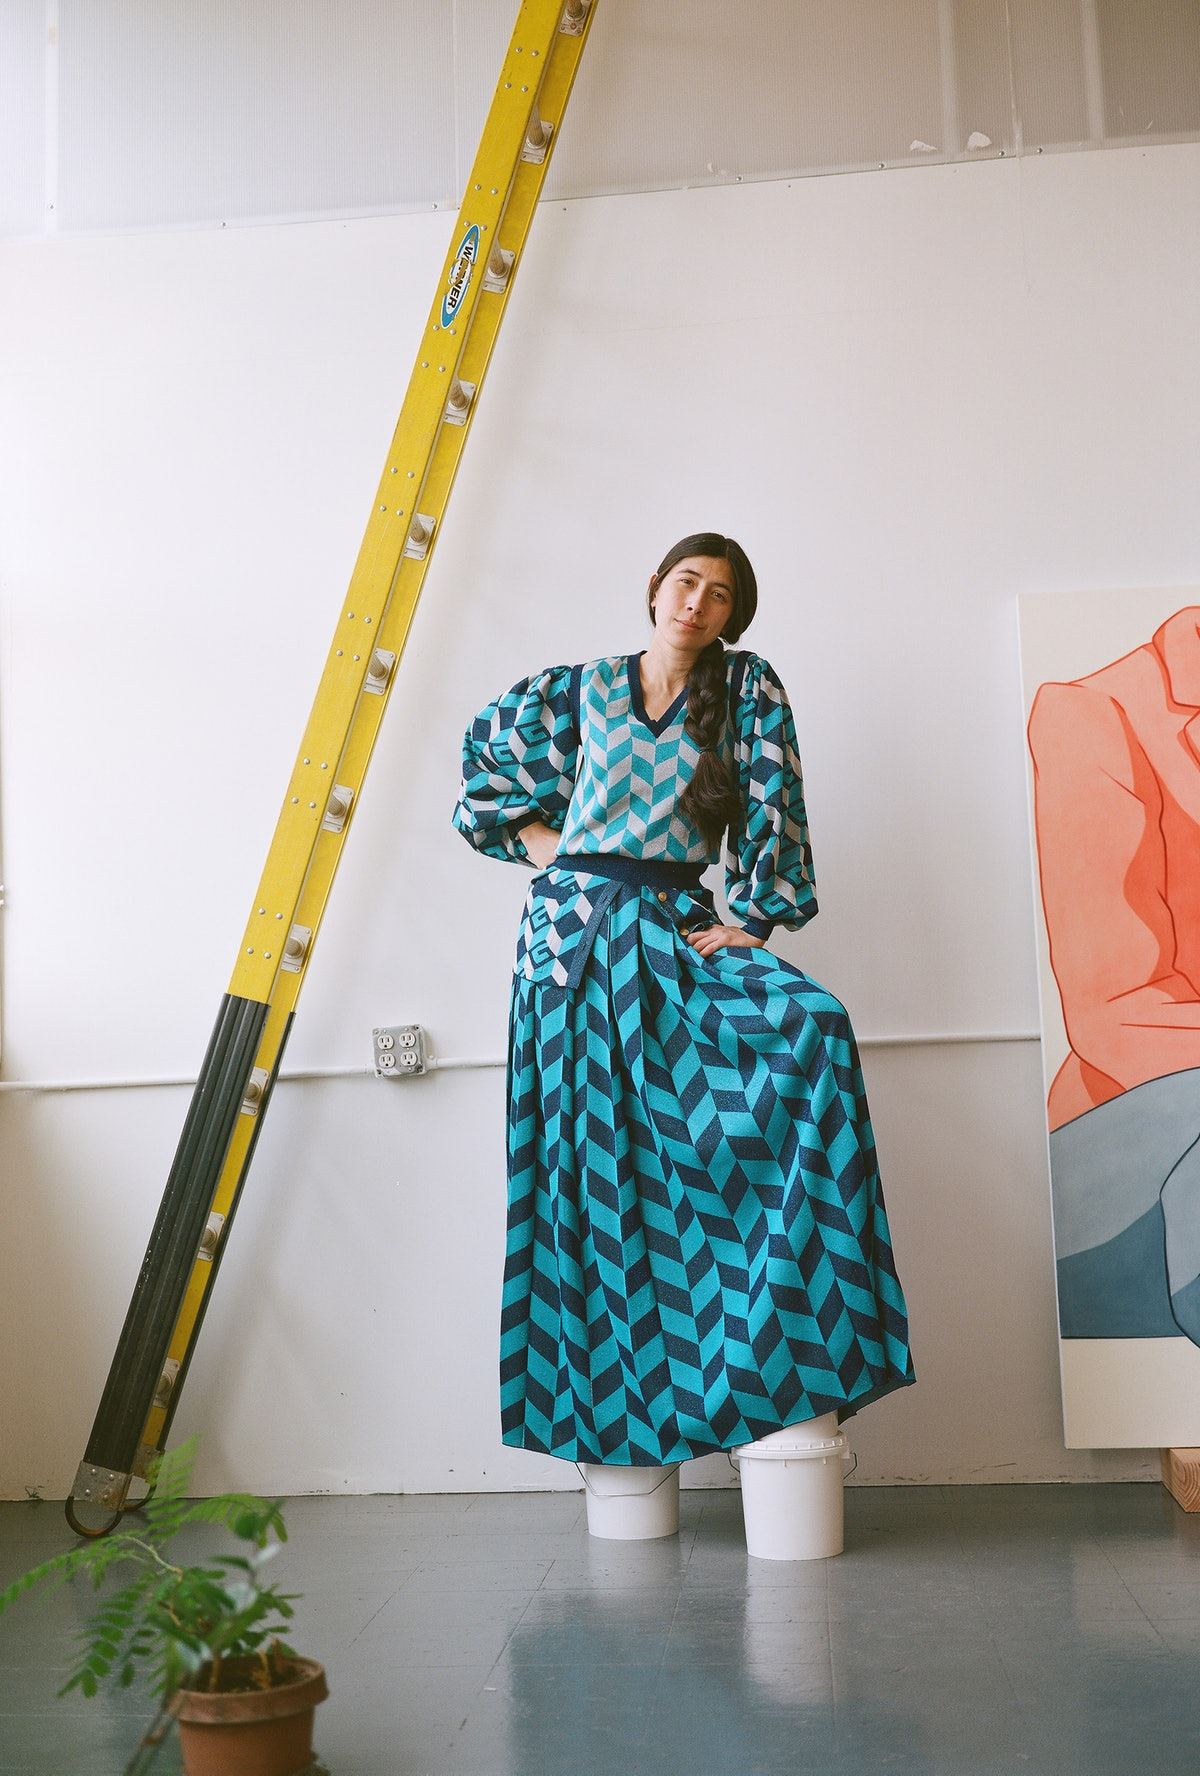 Haldeman wears a Gucci blouse, vest, and skirt; her own shoes in her studio.